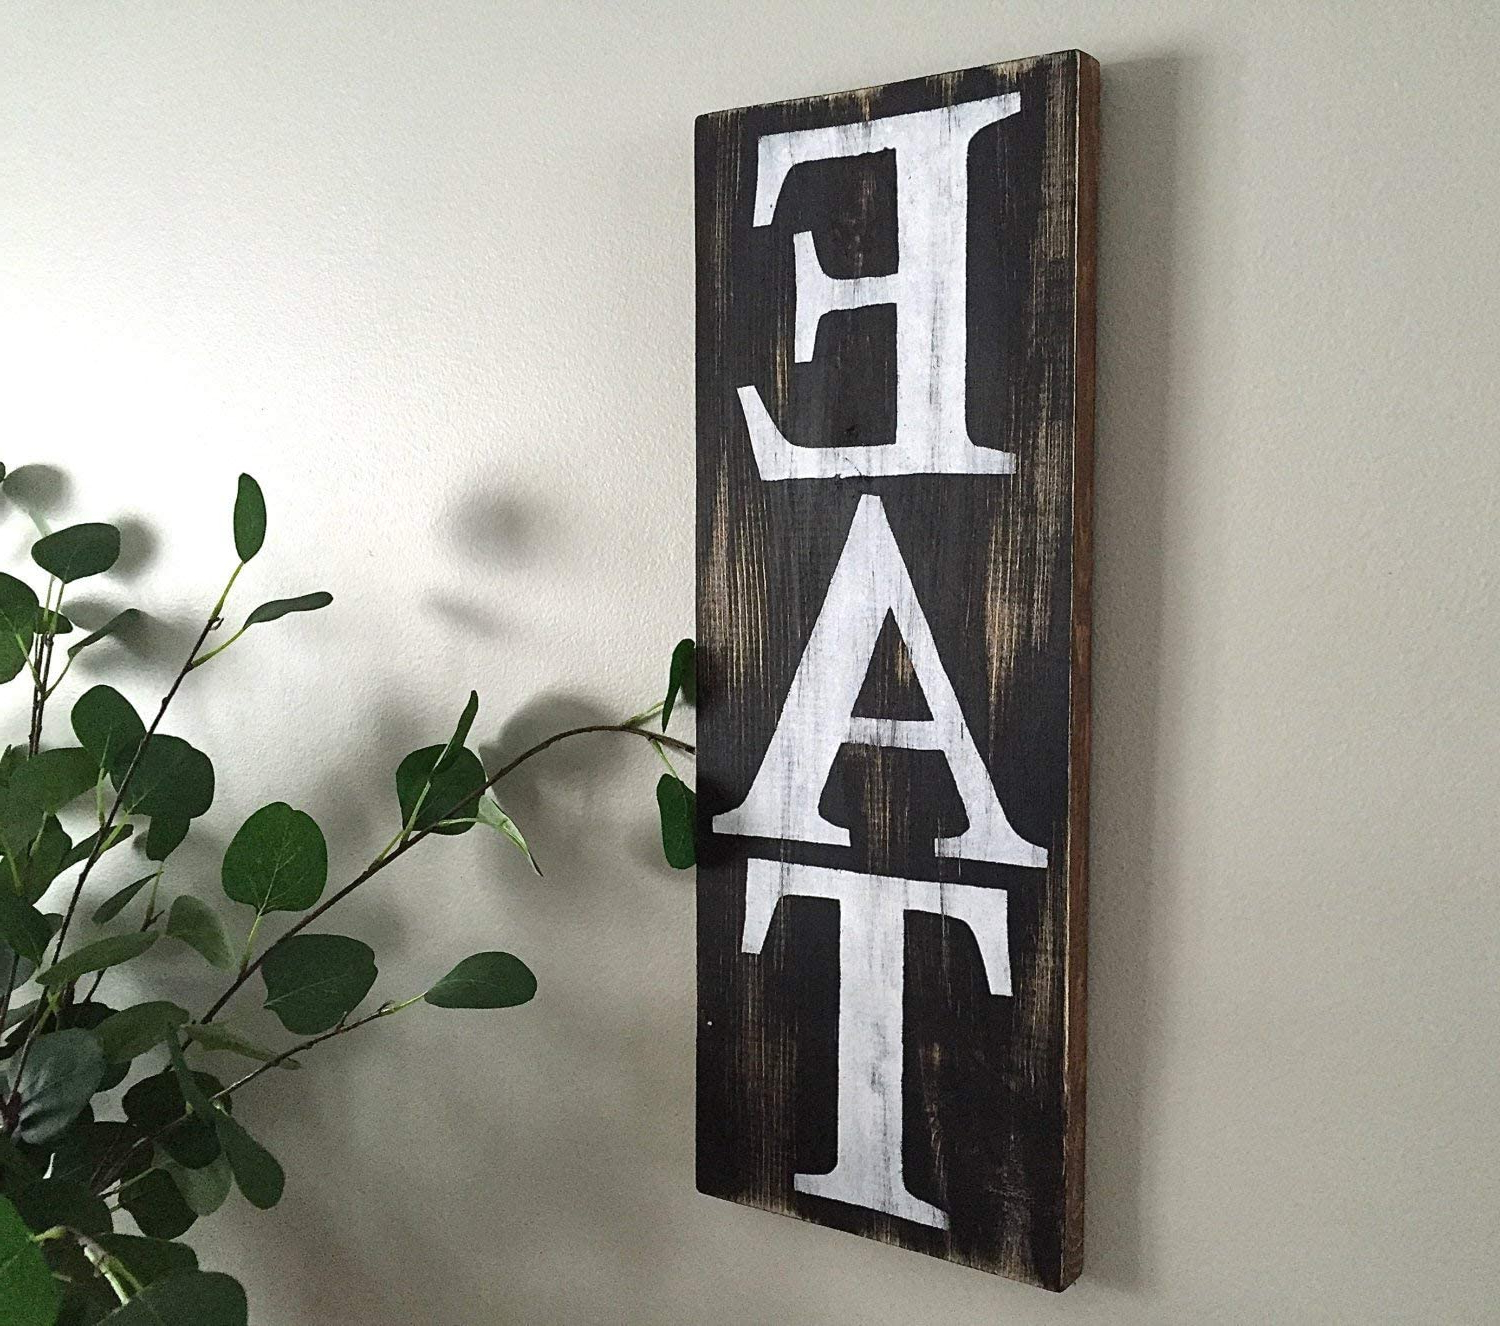 Widely Used Eat Rustic Farmhouse Wood Wall Décor Pertaining To Eat Sign Bw Kitchen Wood Sign Plaque Decor Kitchen Sign Rustic Wall Wood Sign Plaque Decor Farmhouse Wood Sign Plaque Decor (View 9 of 20)